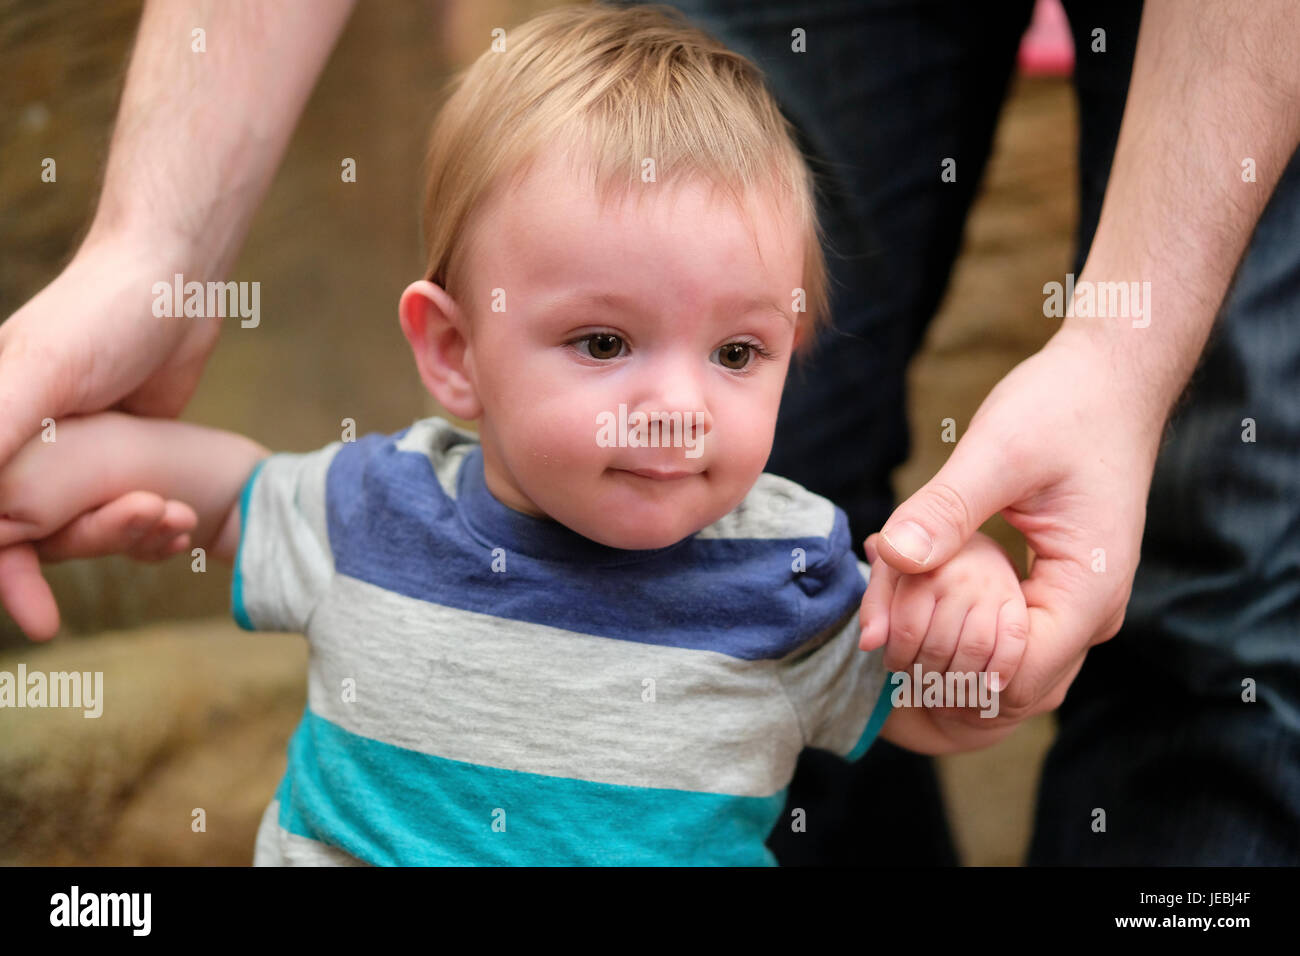 baby boy learning to walk - Stock Image